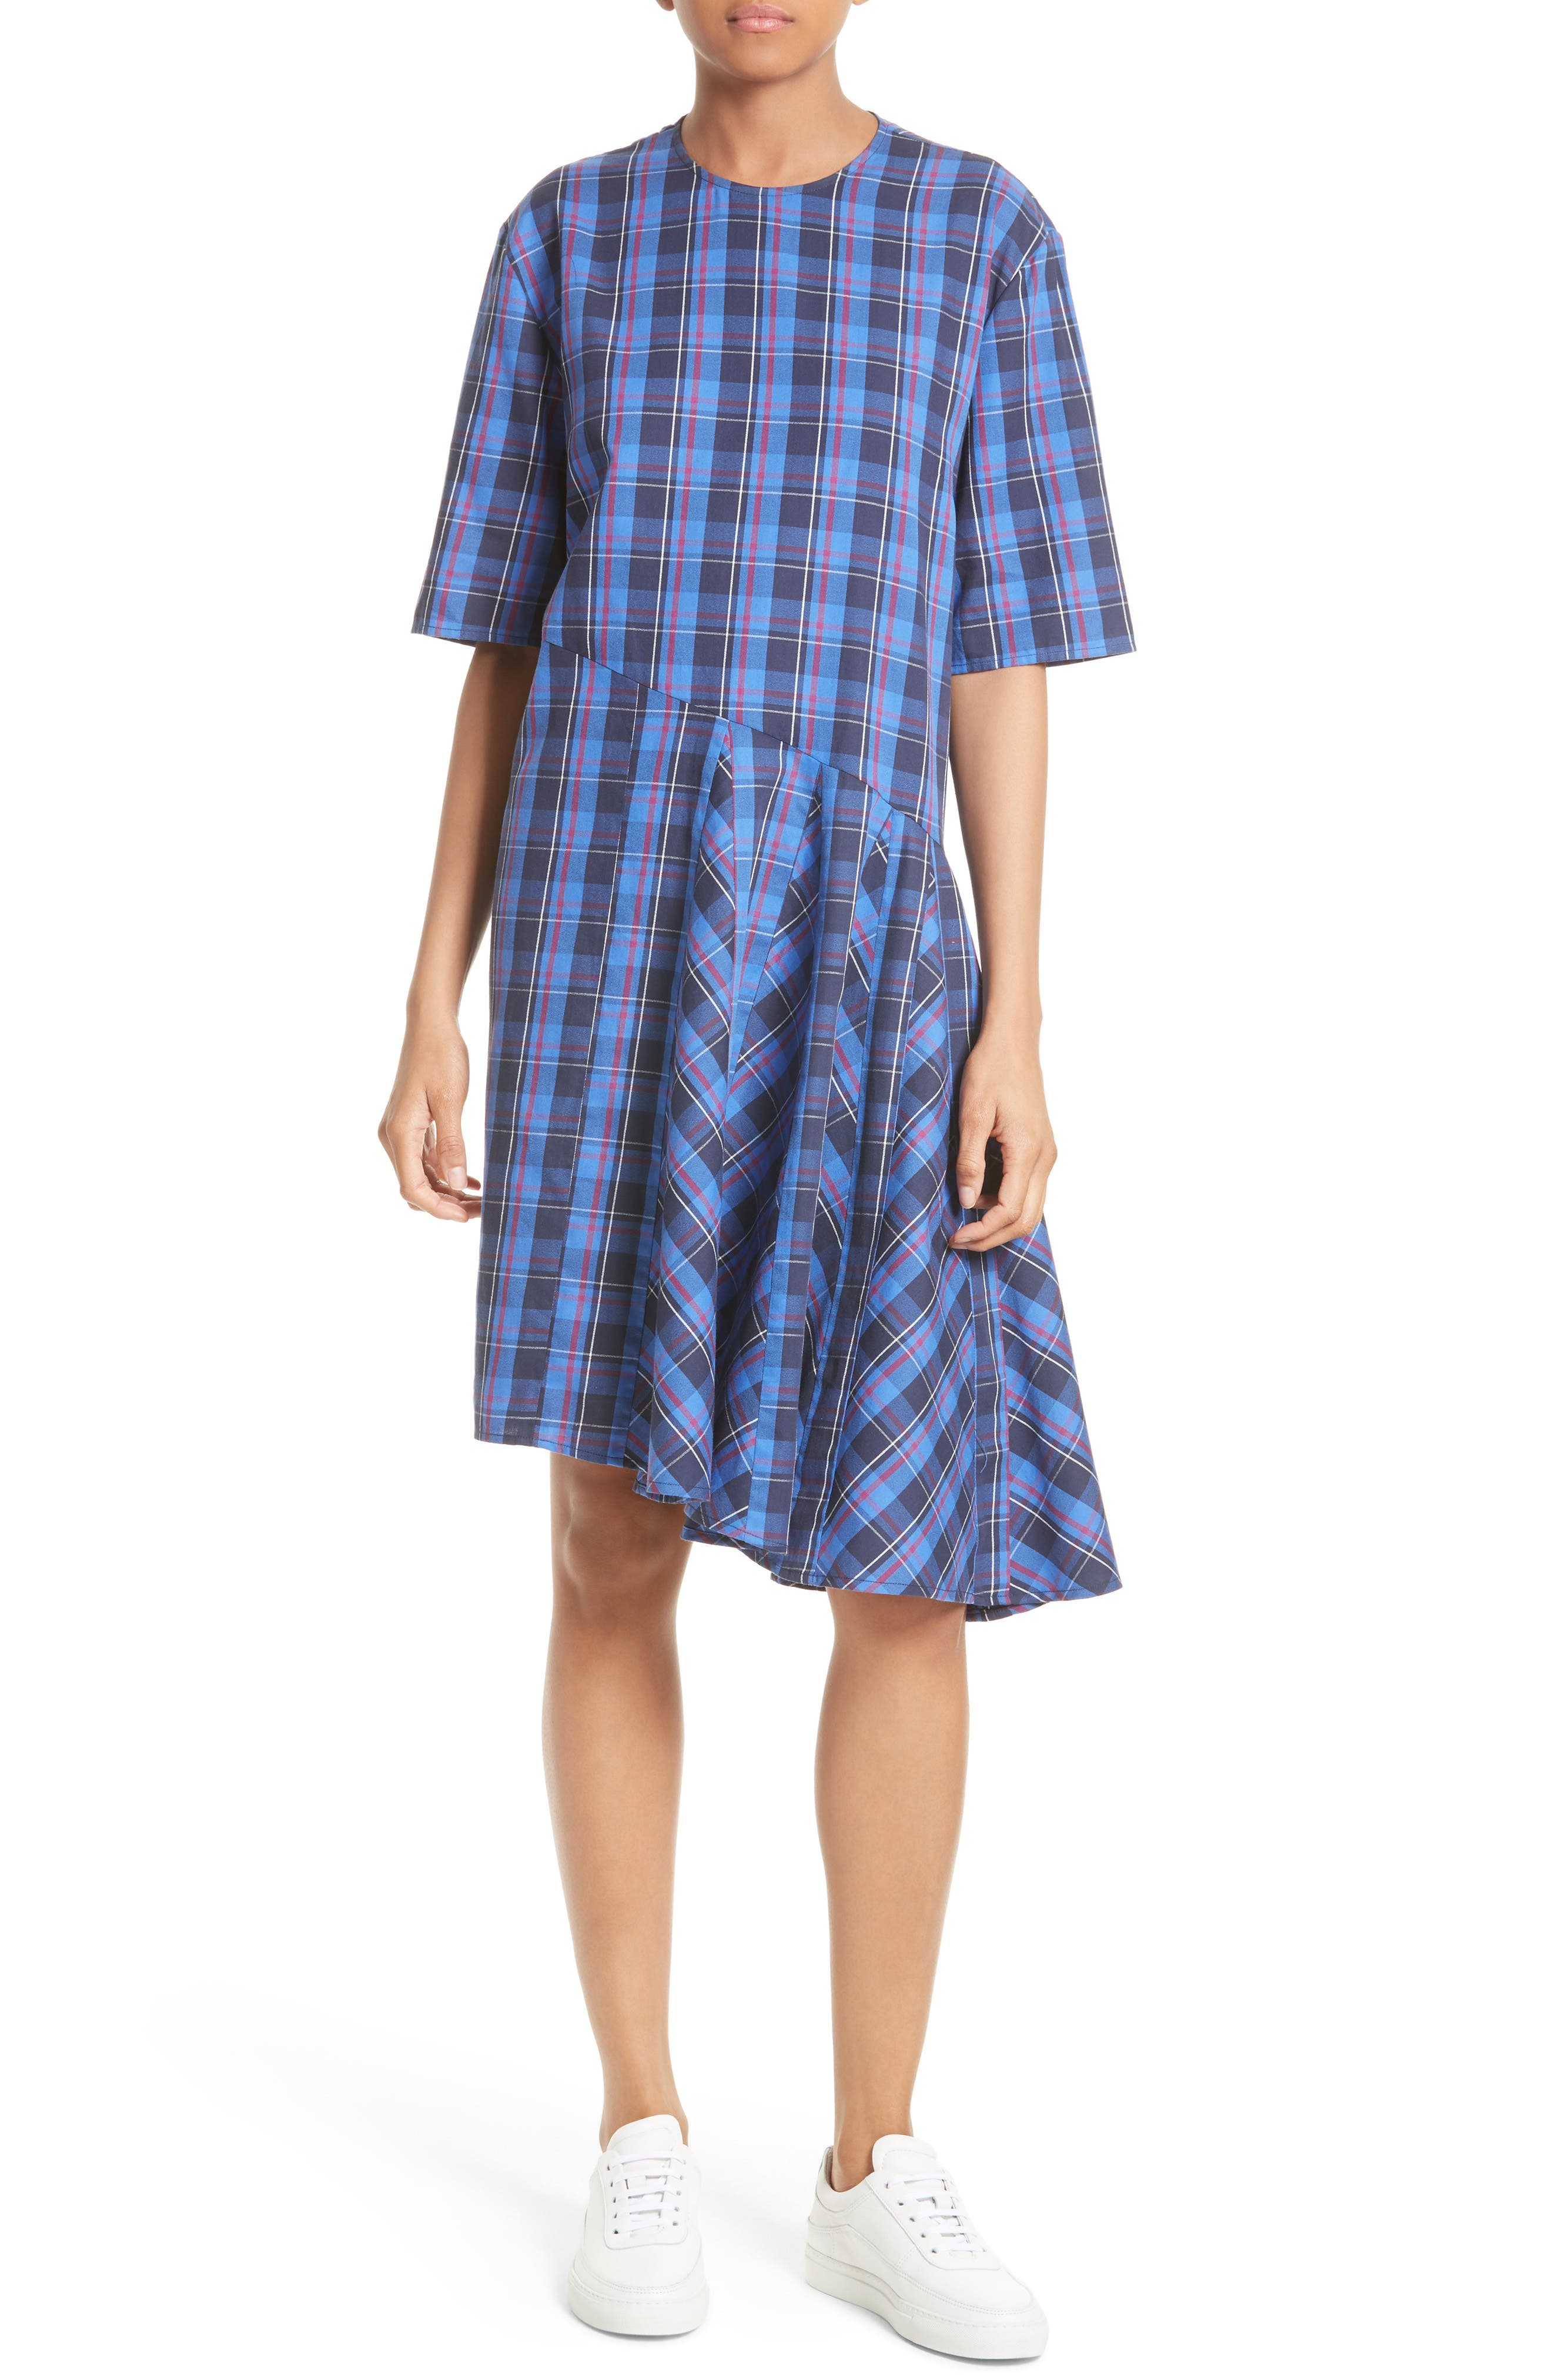 Public School Rima Asymmetrical Plaid Cotton Dress